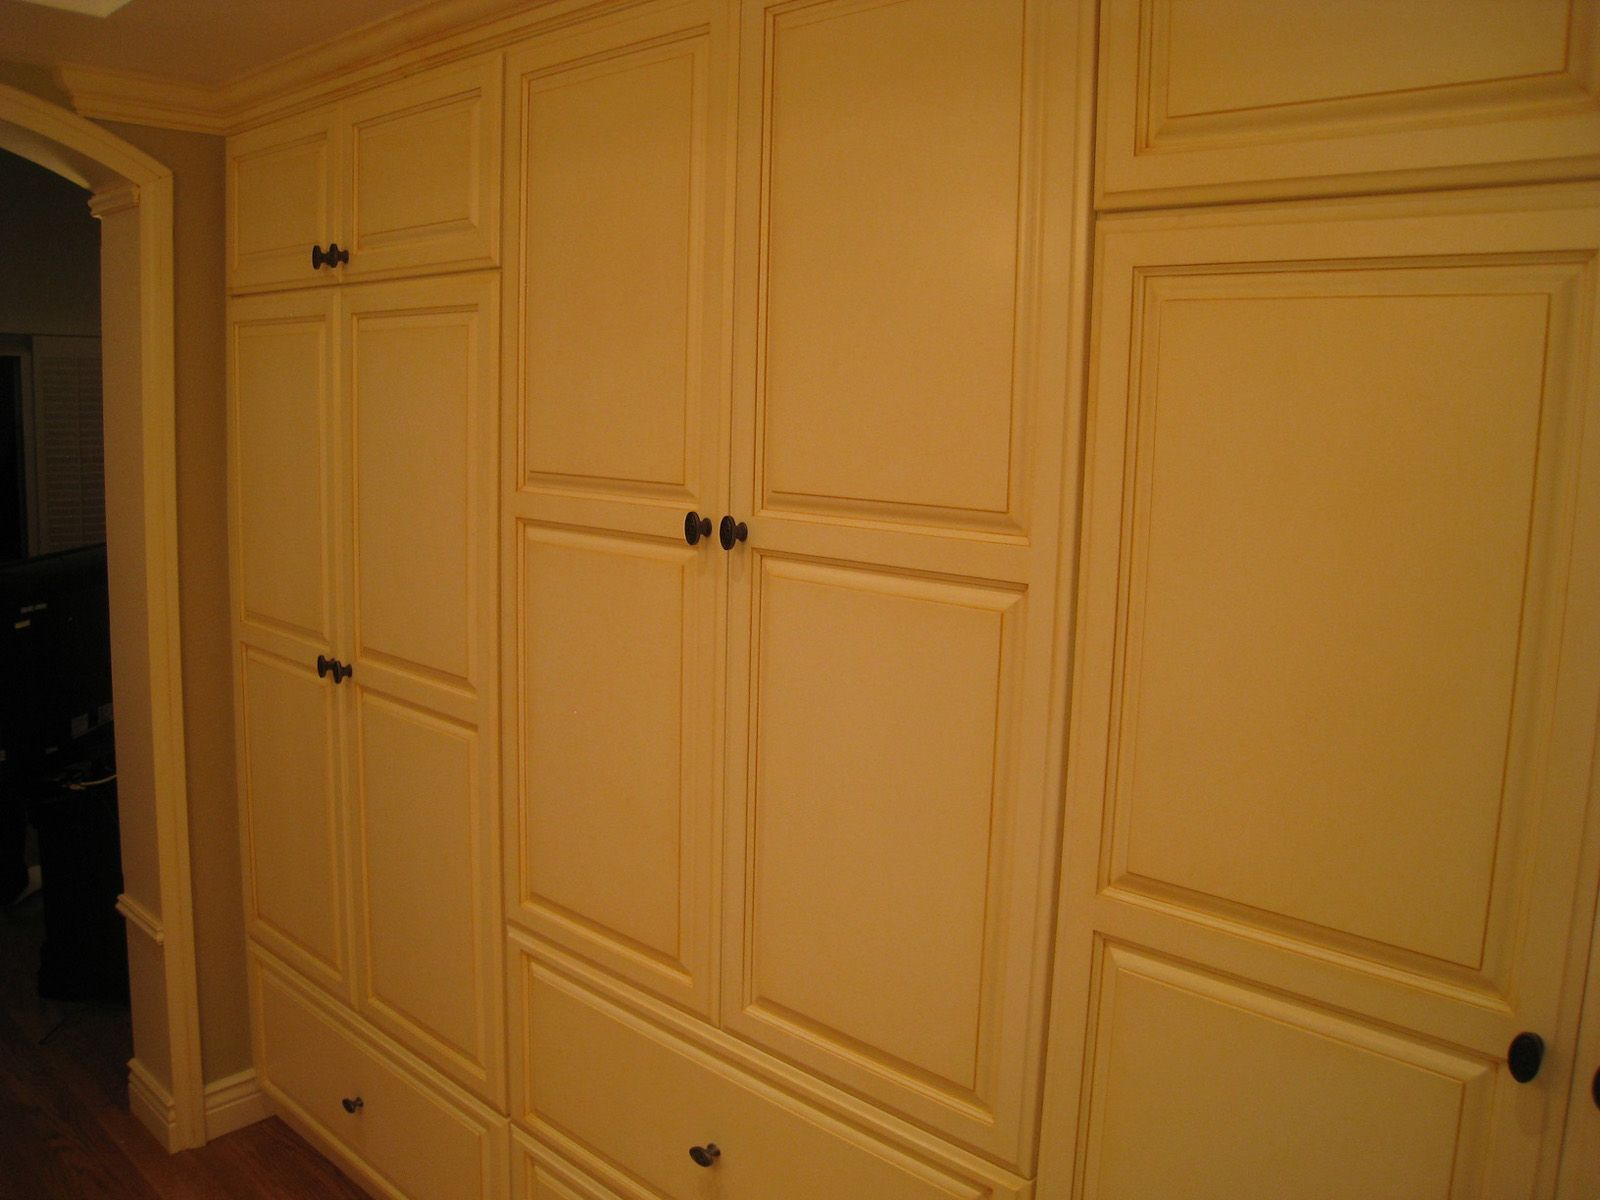 Gentil Bay Area Solid Wood Handmade And Custom Designed Closet Storage Systems For  Your Interior Home Remodel Construction.